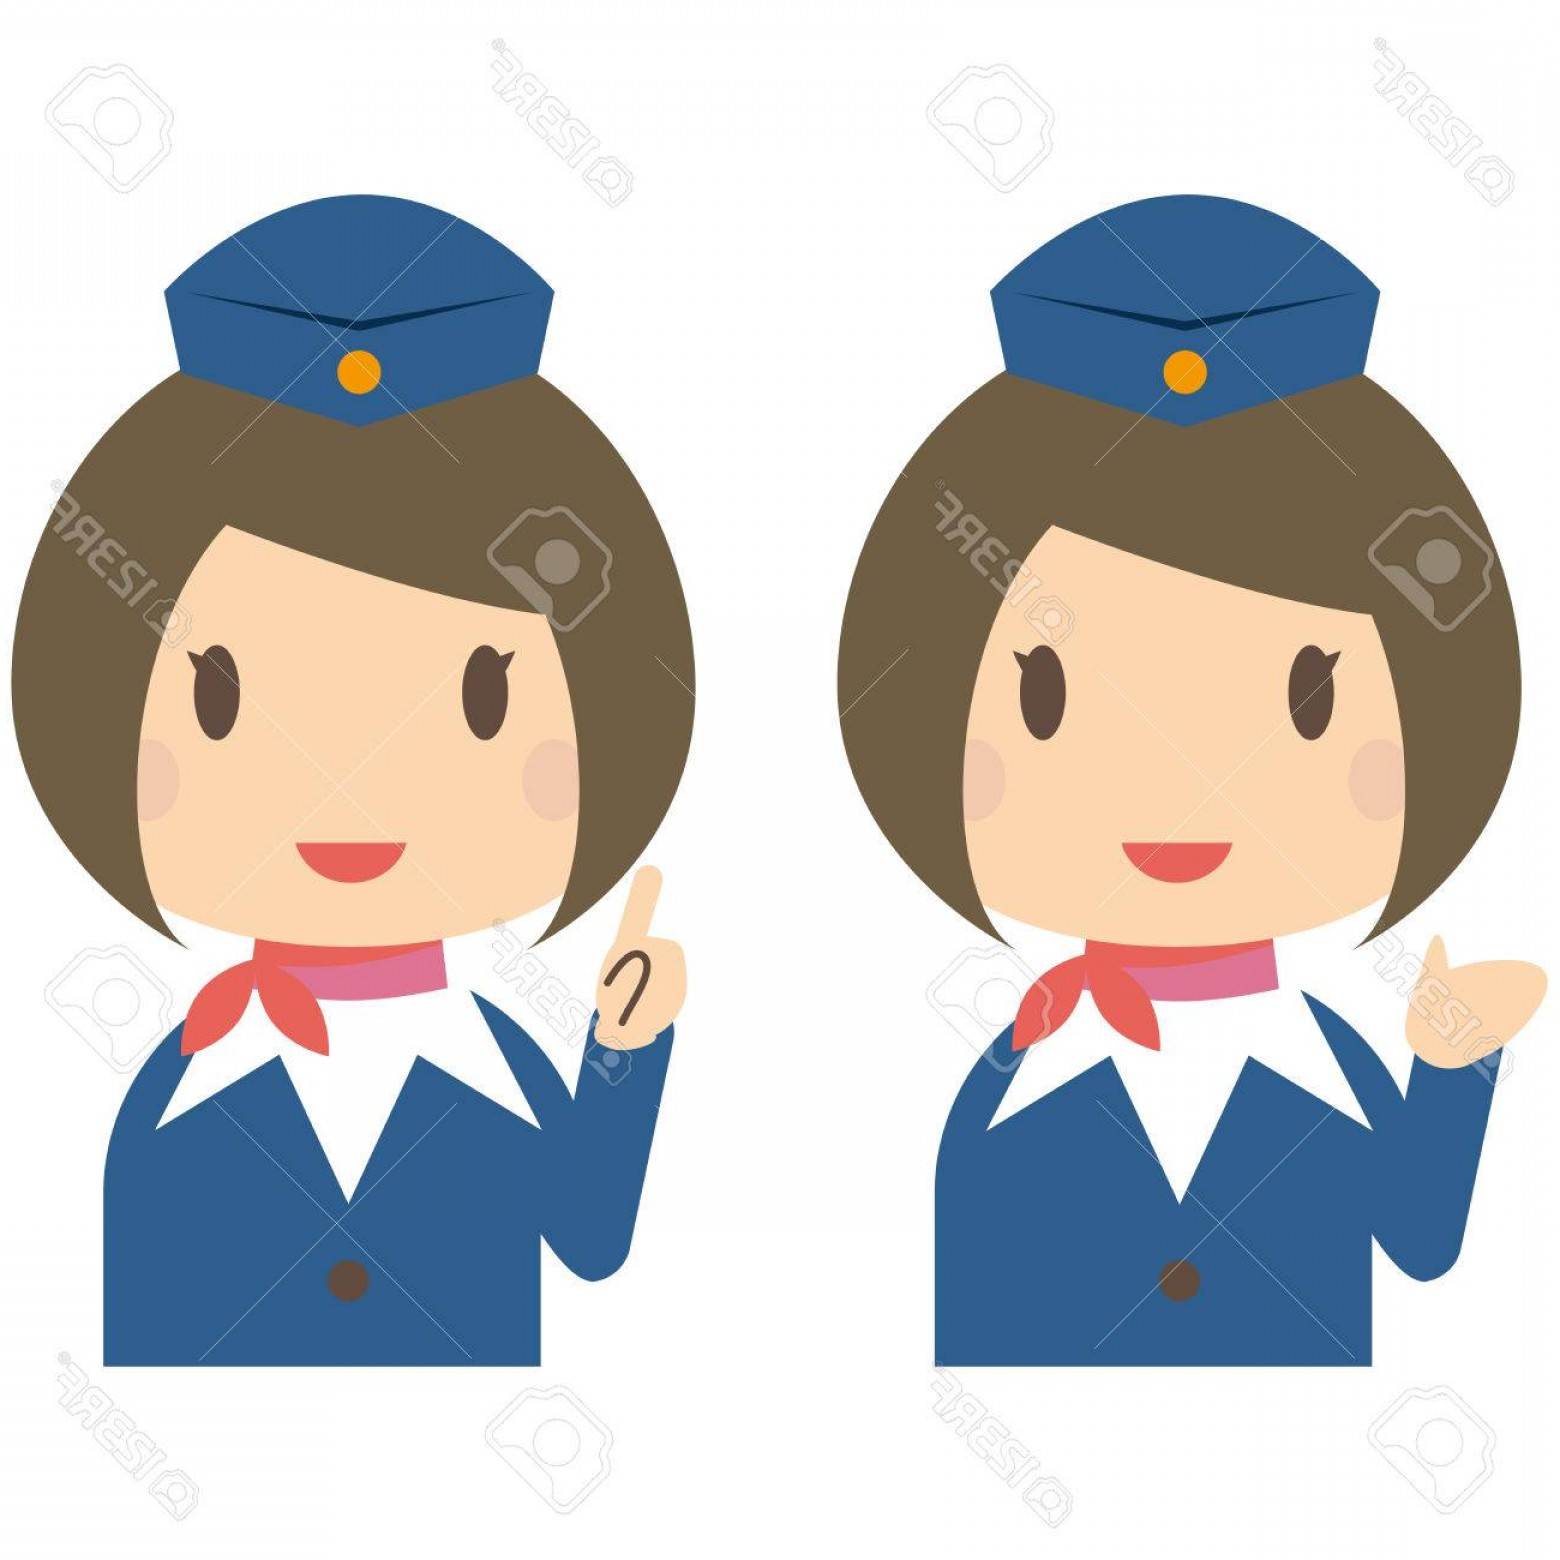 Vector Man Working In Cabin: Photostock Vector Cute Cabin Crew With Bobbed Hair Guidance And Introduction